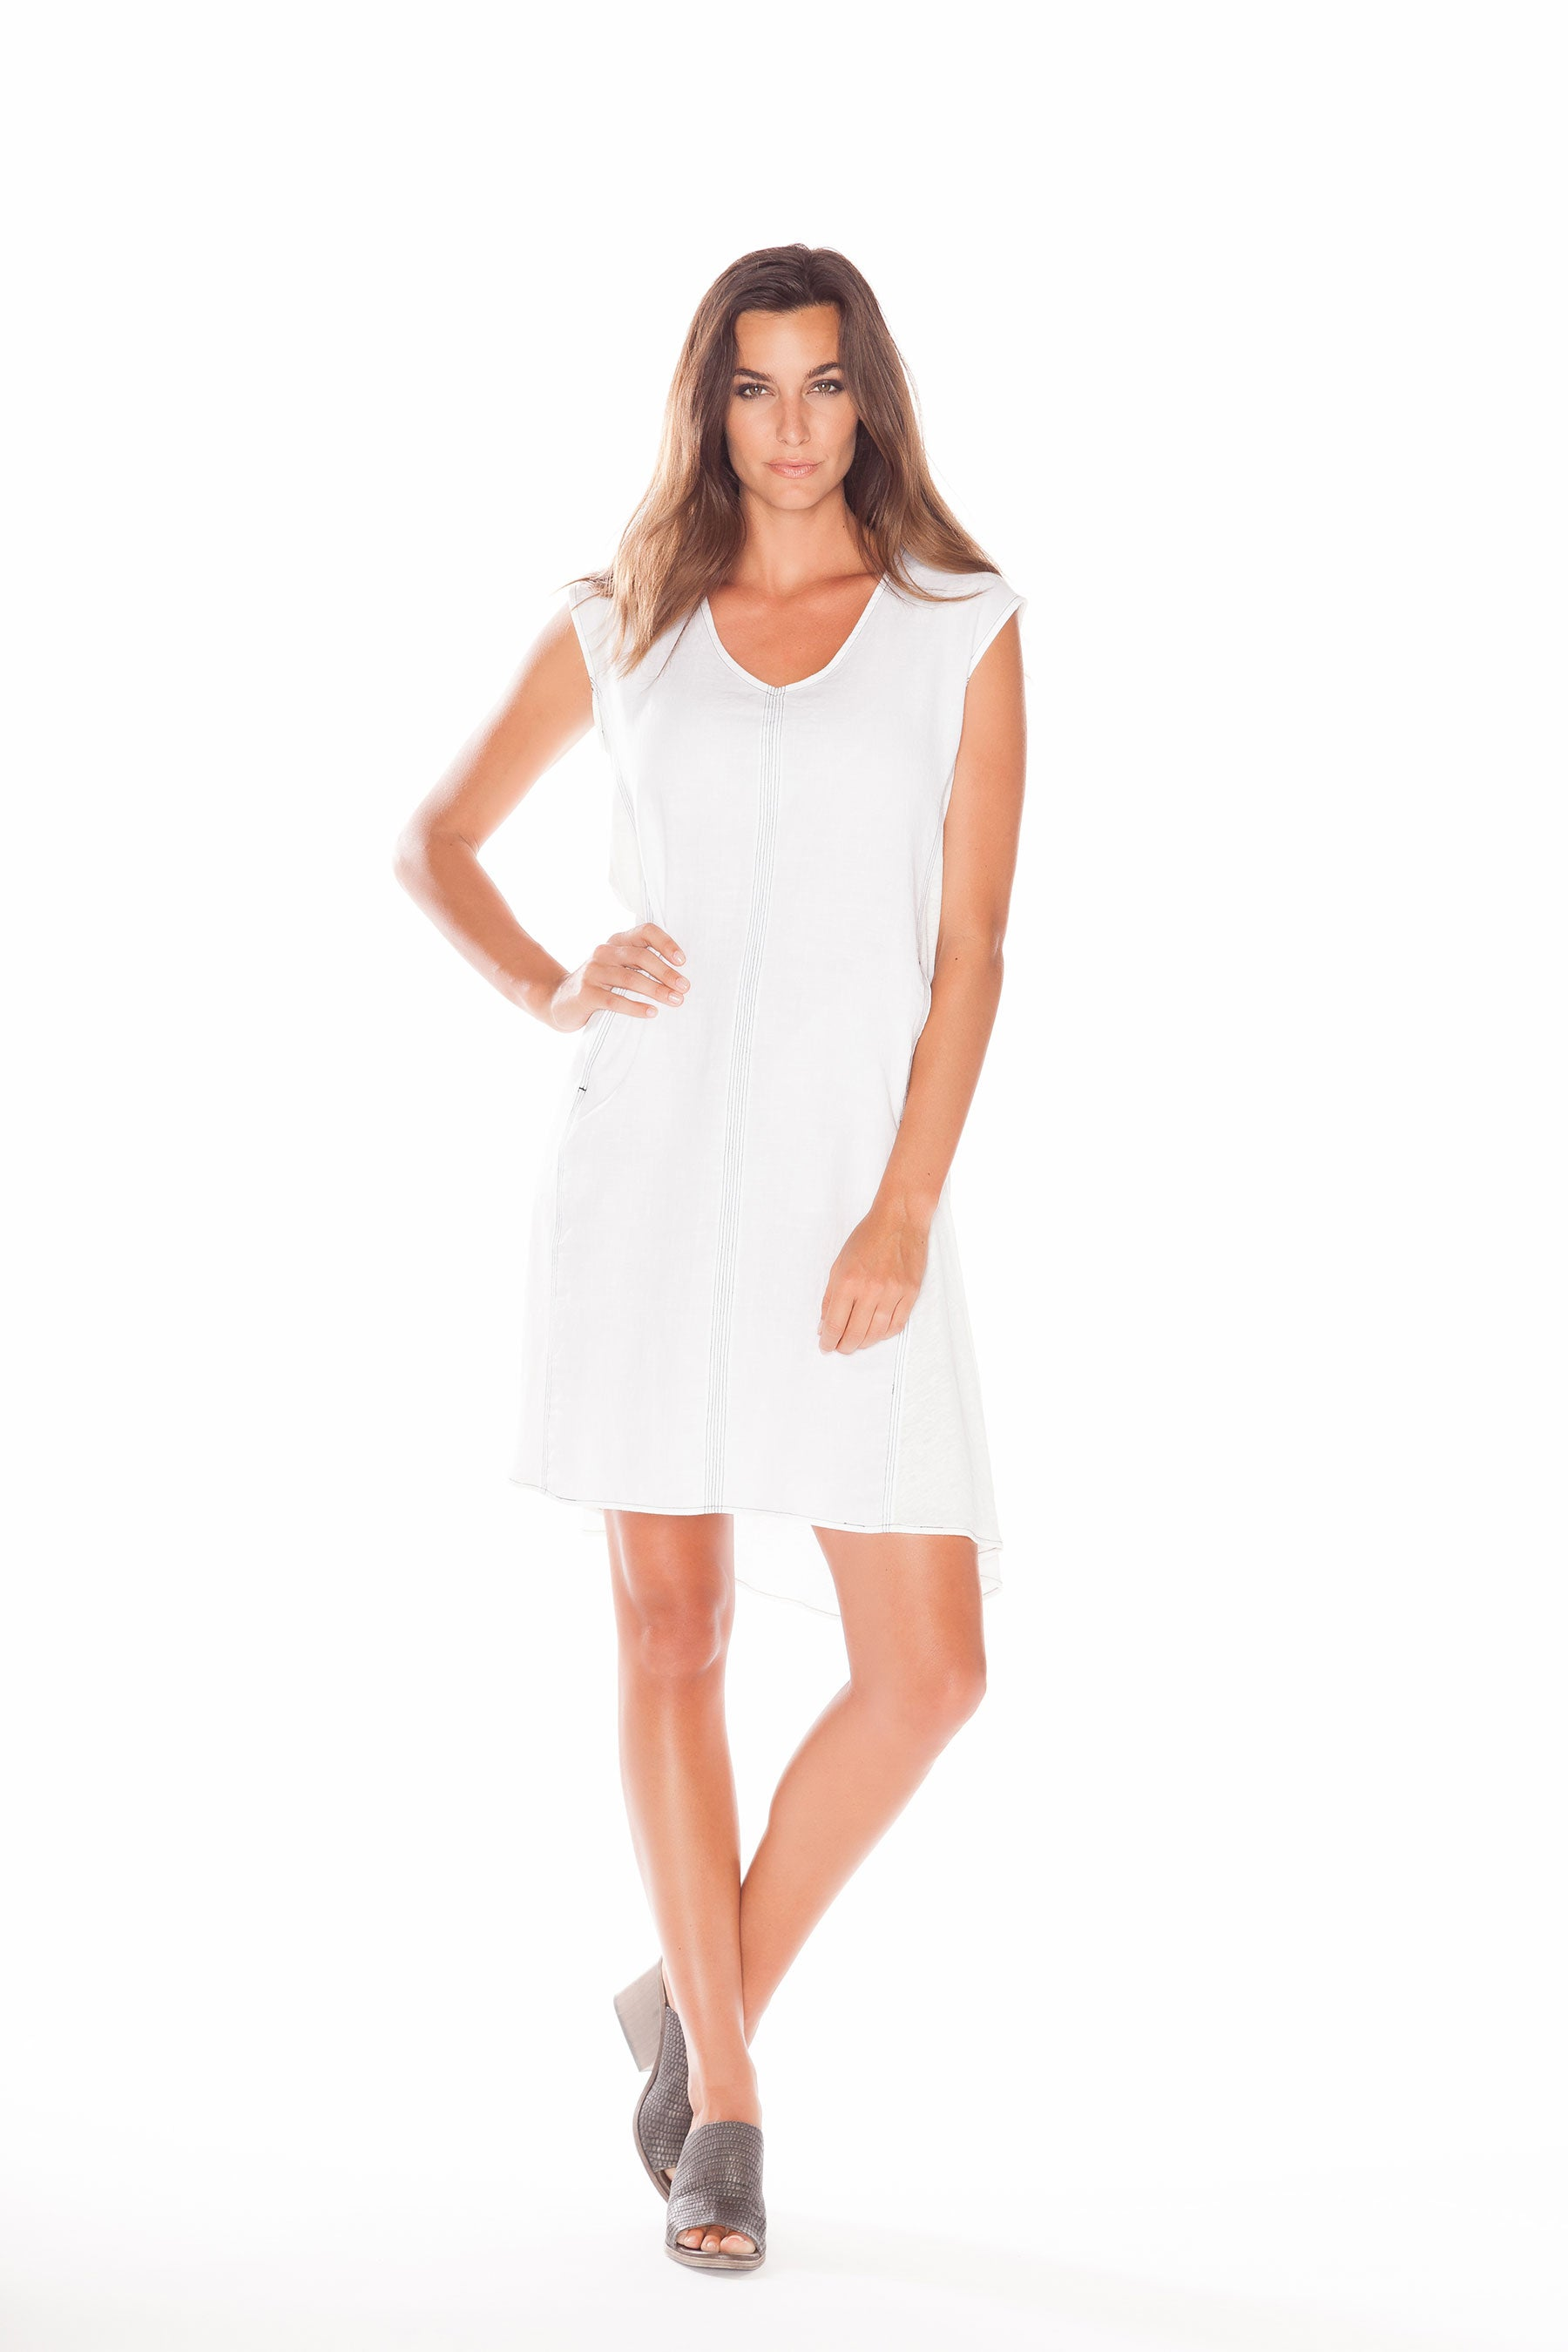 Dress code freestyle - Butonfreestyle Dress Soft White